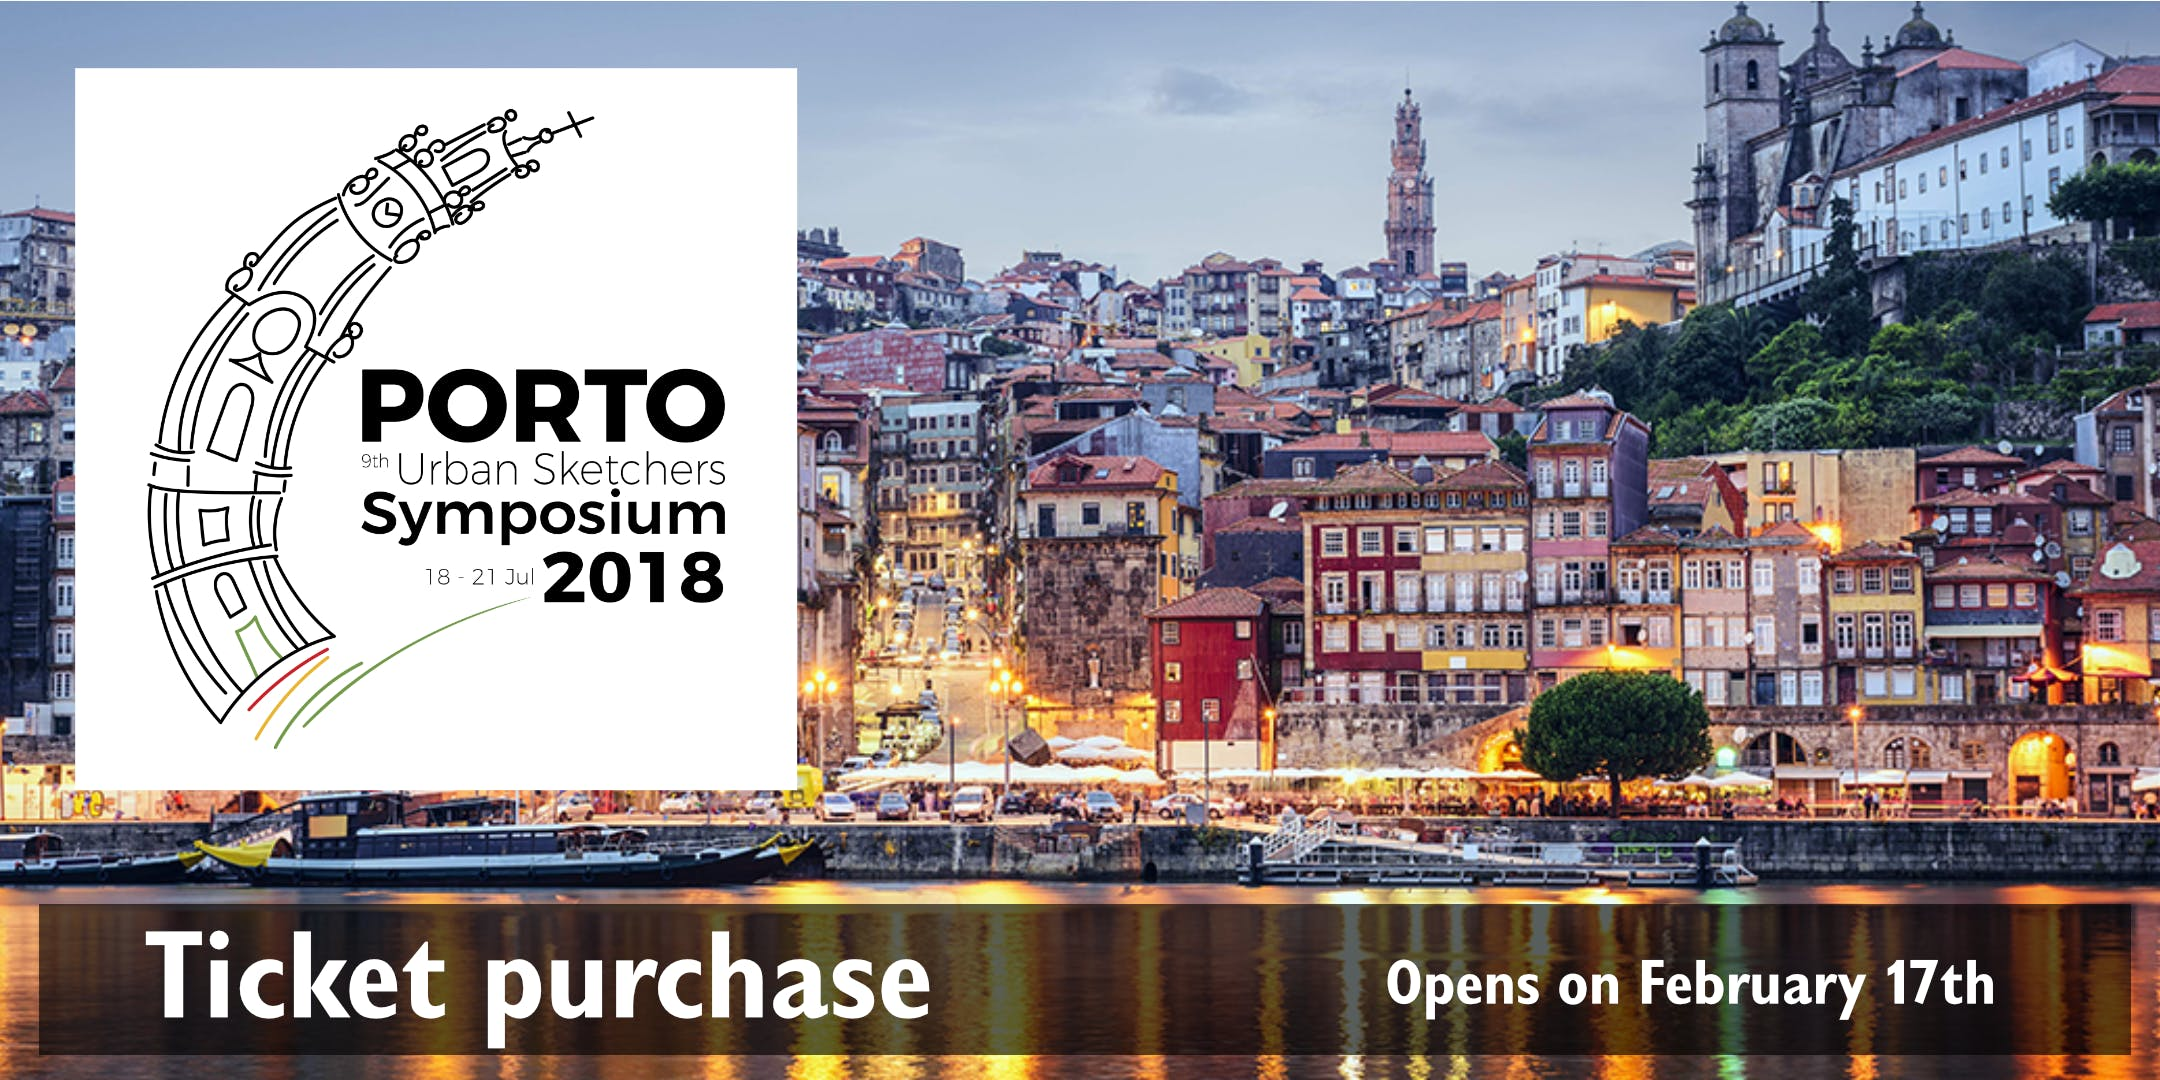 9th Urban Sketchers Symposium - Porto 2018